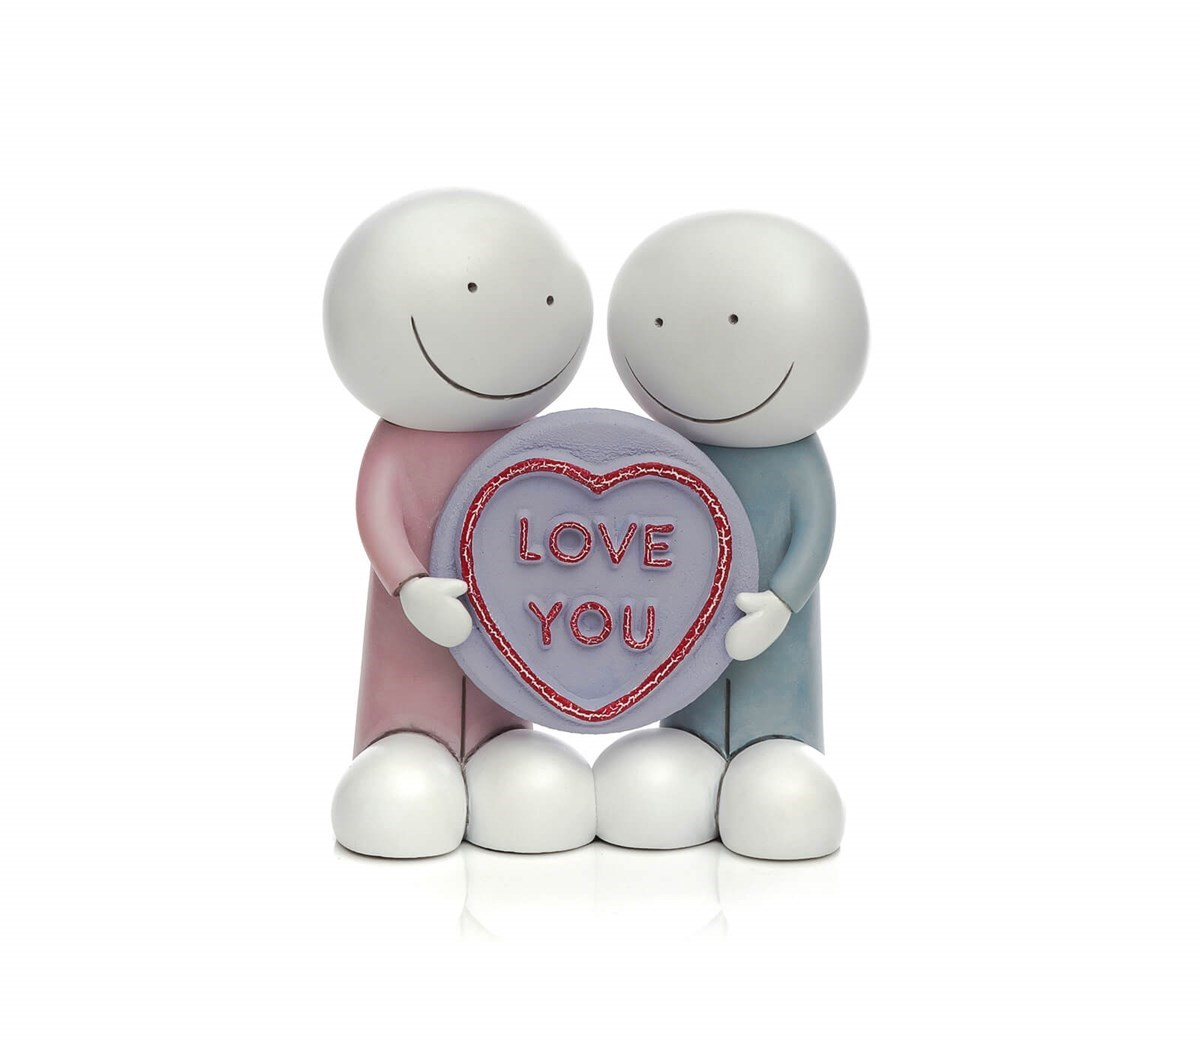 Love You by Doug Hyde